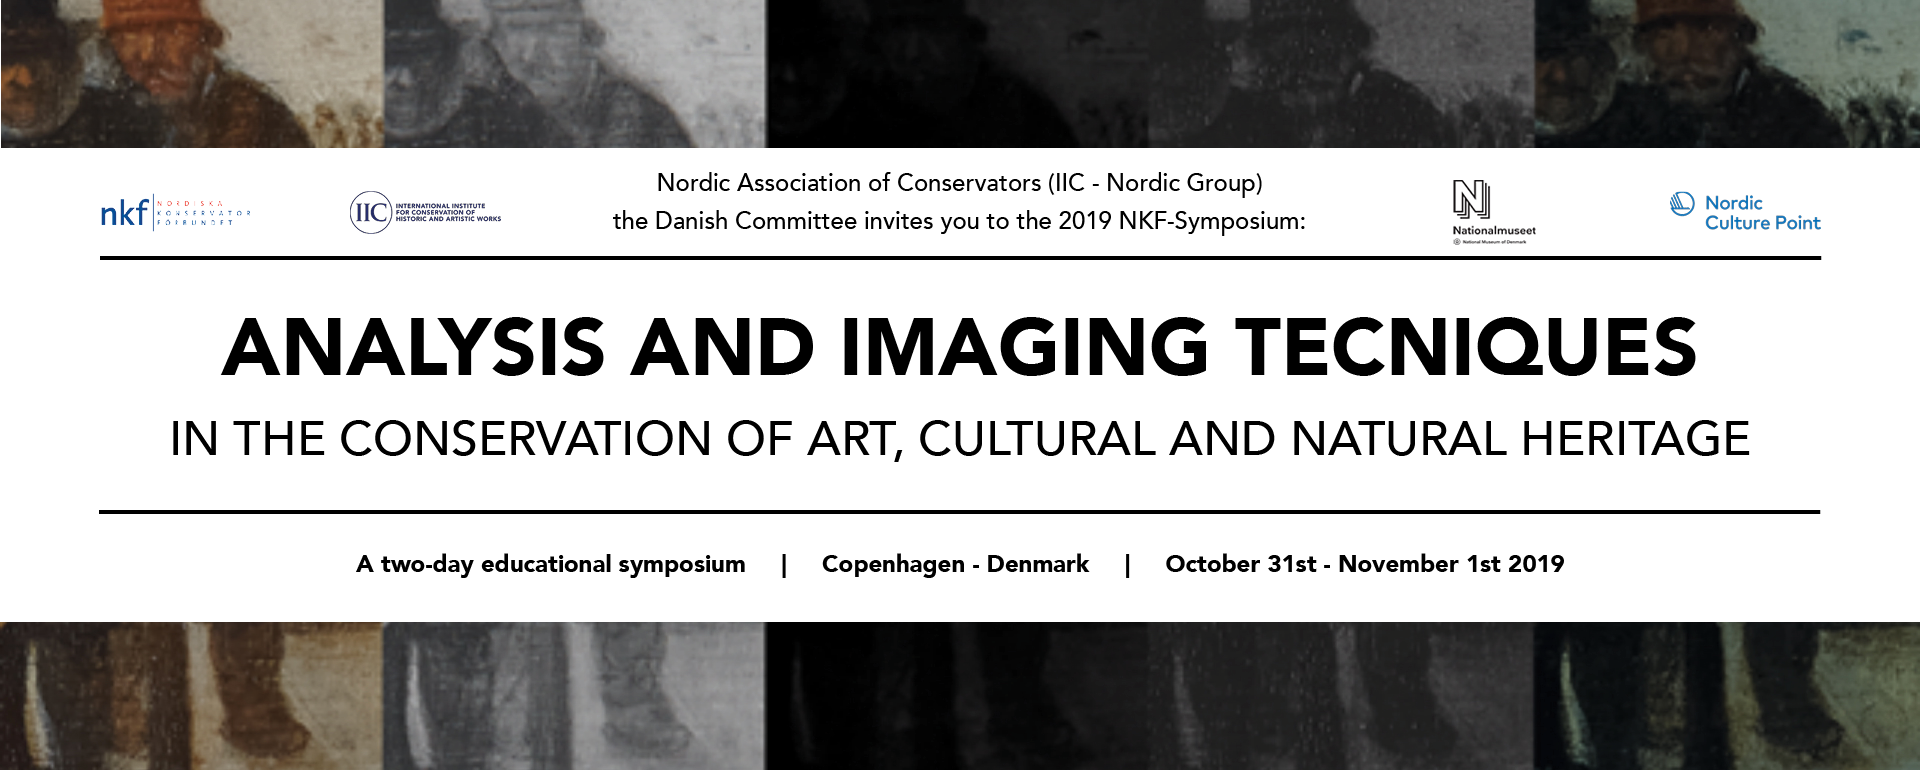 NKF Symposium 2019: Analysis and imaging techniques in the conservation of art, cultural and natural heritage